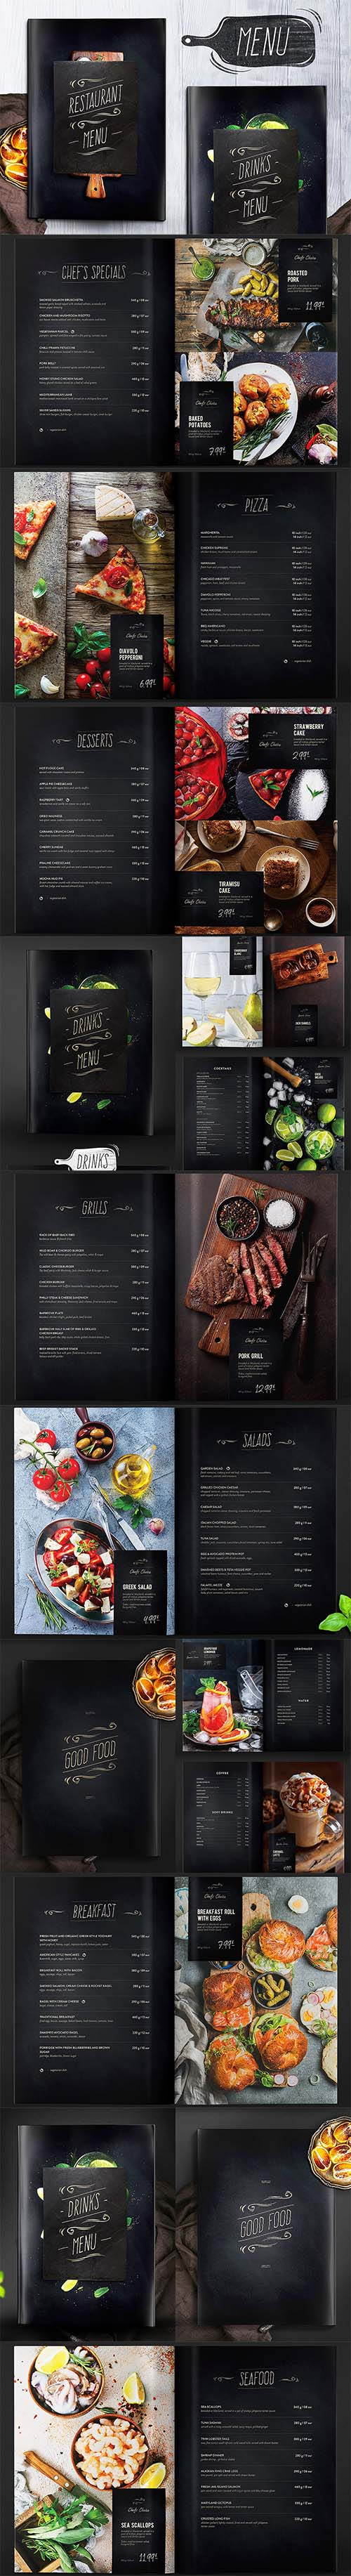 Restaurant Menu - Food & Drinks